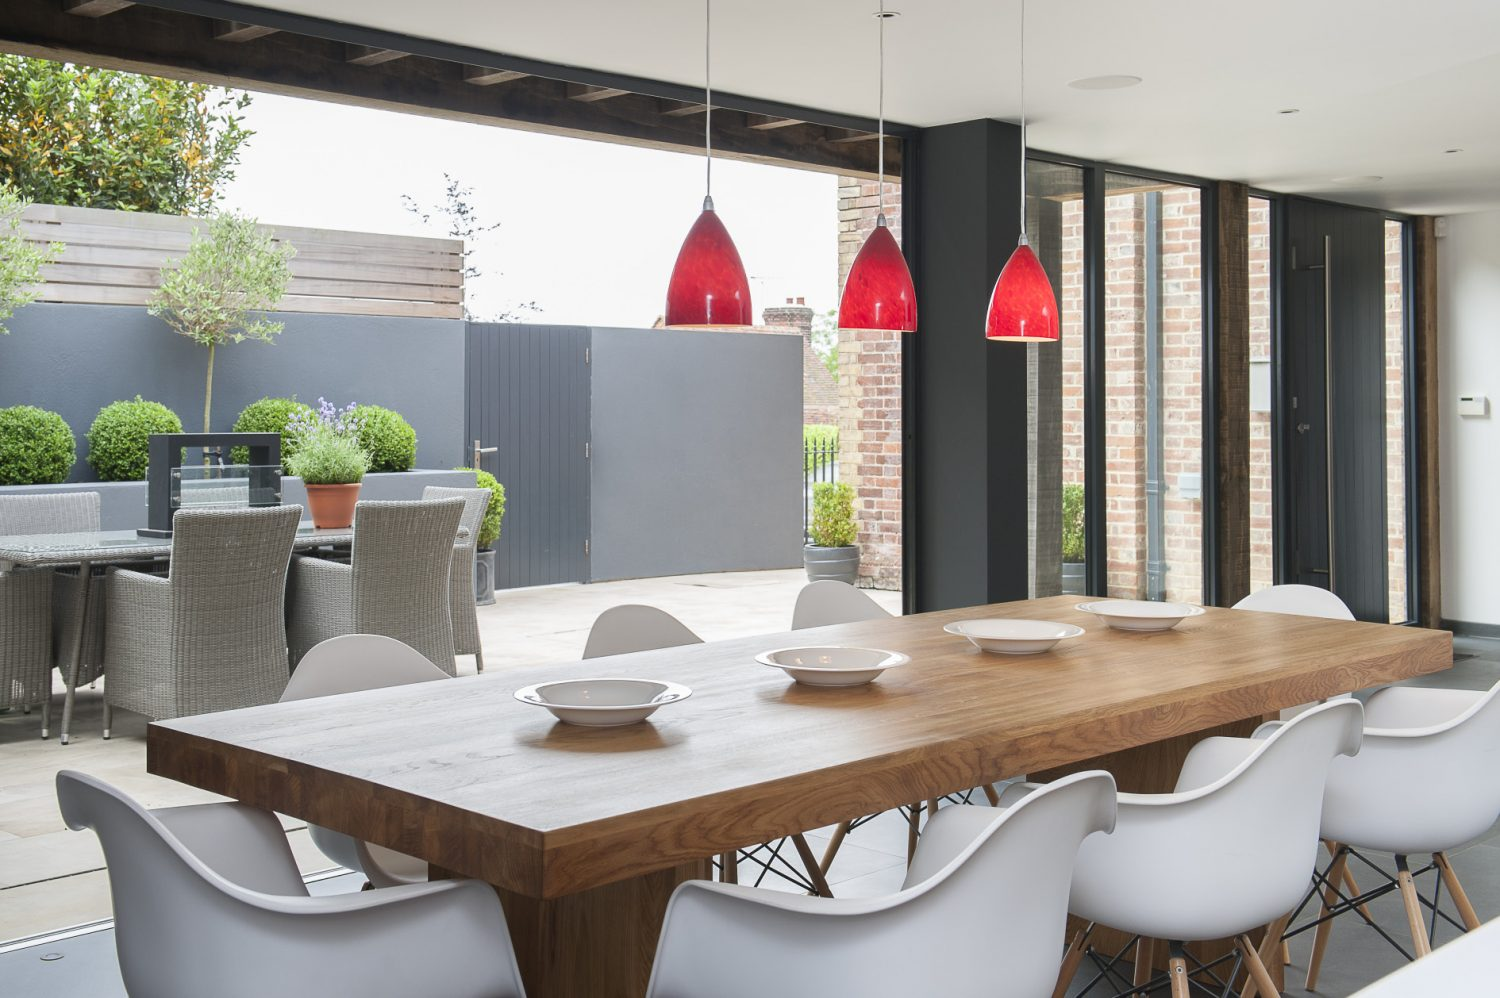 In the kitchen bi-folding doors lead out onto an elegant sandstone terrace and its Lloyd Loom table and chairs